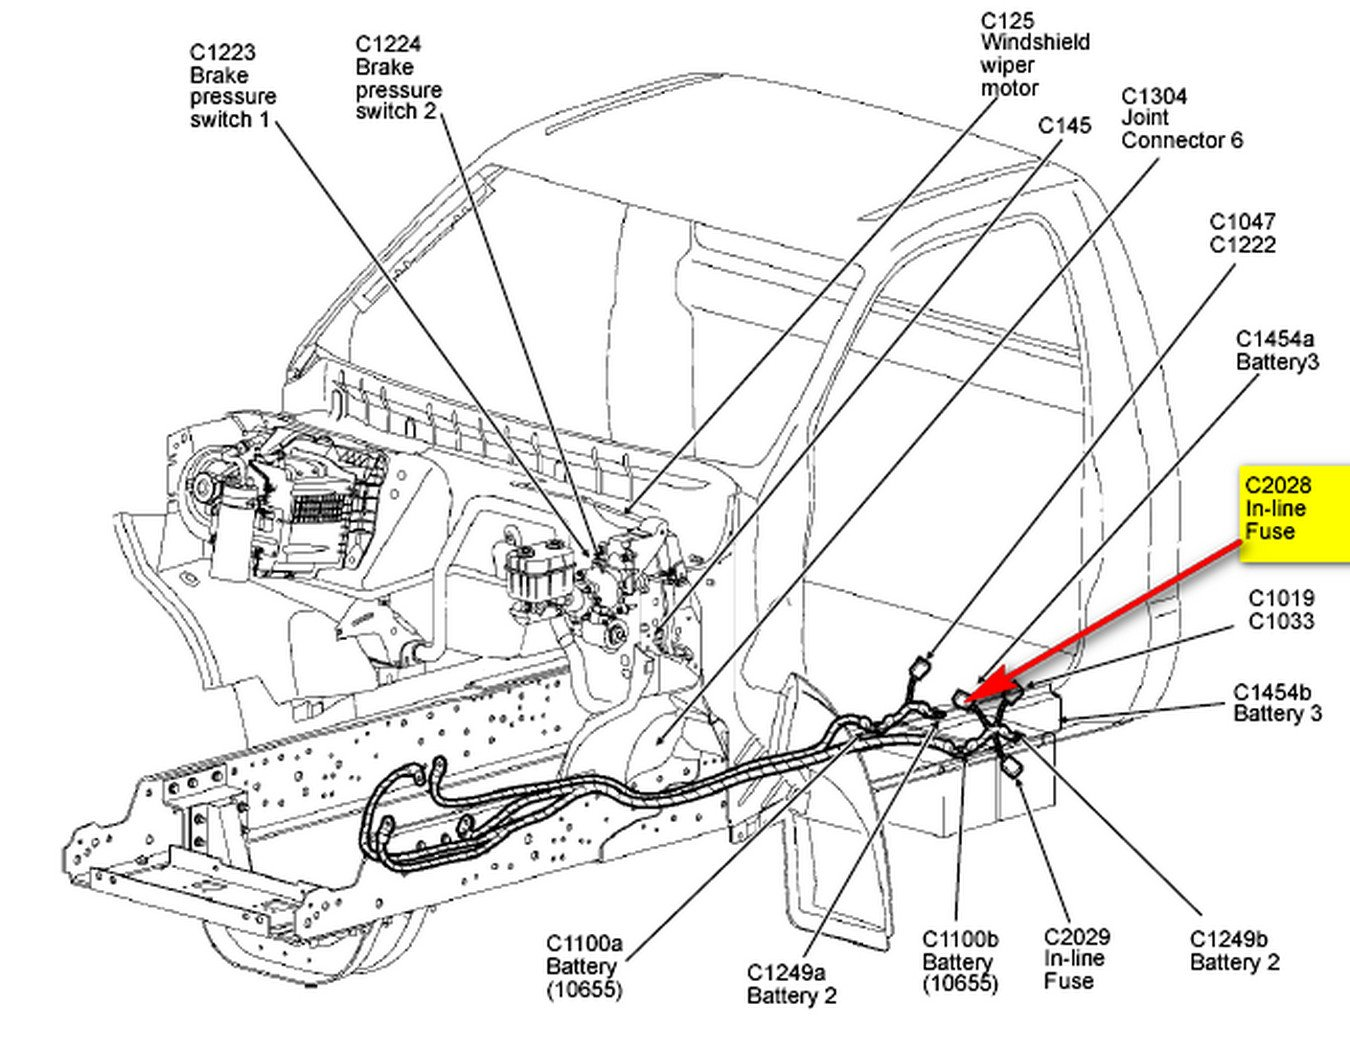 2008 F650 Headlight Wiring Diagram Free Download 2011 Ford Super Duty Fuse Box Circuit And Hub U2022